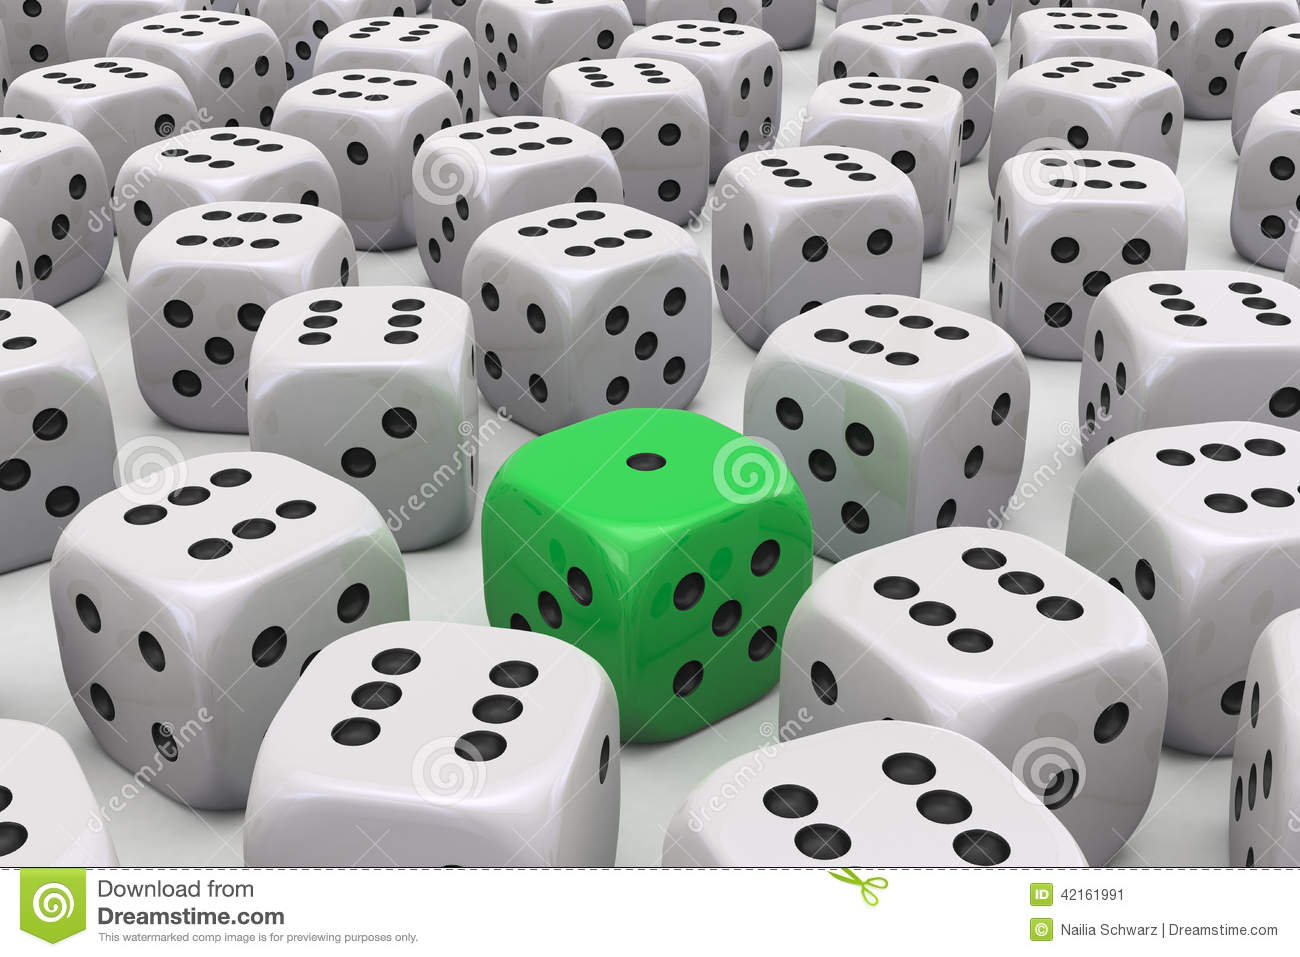 One Die is different